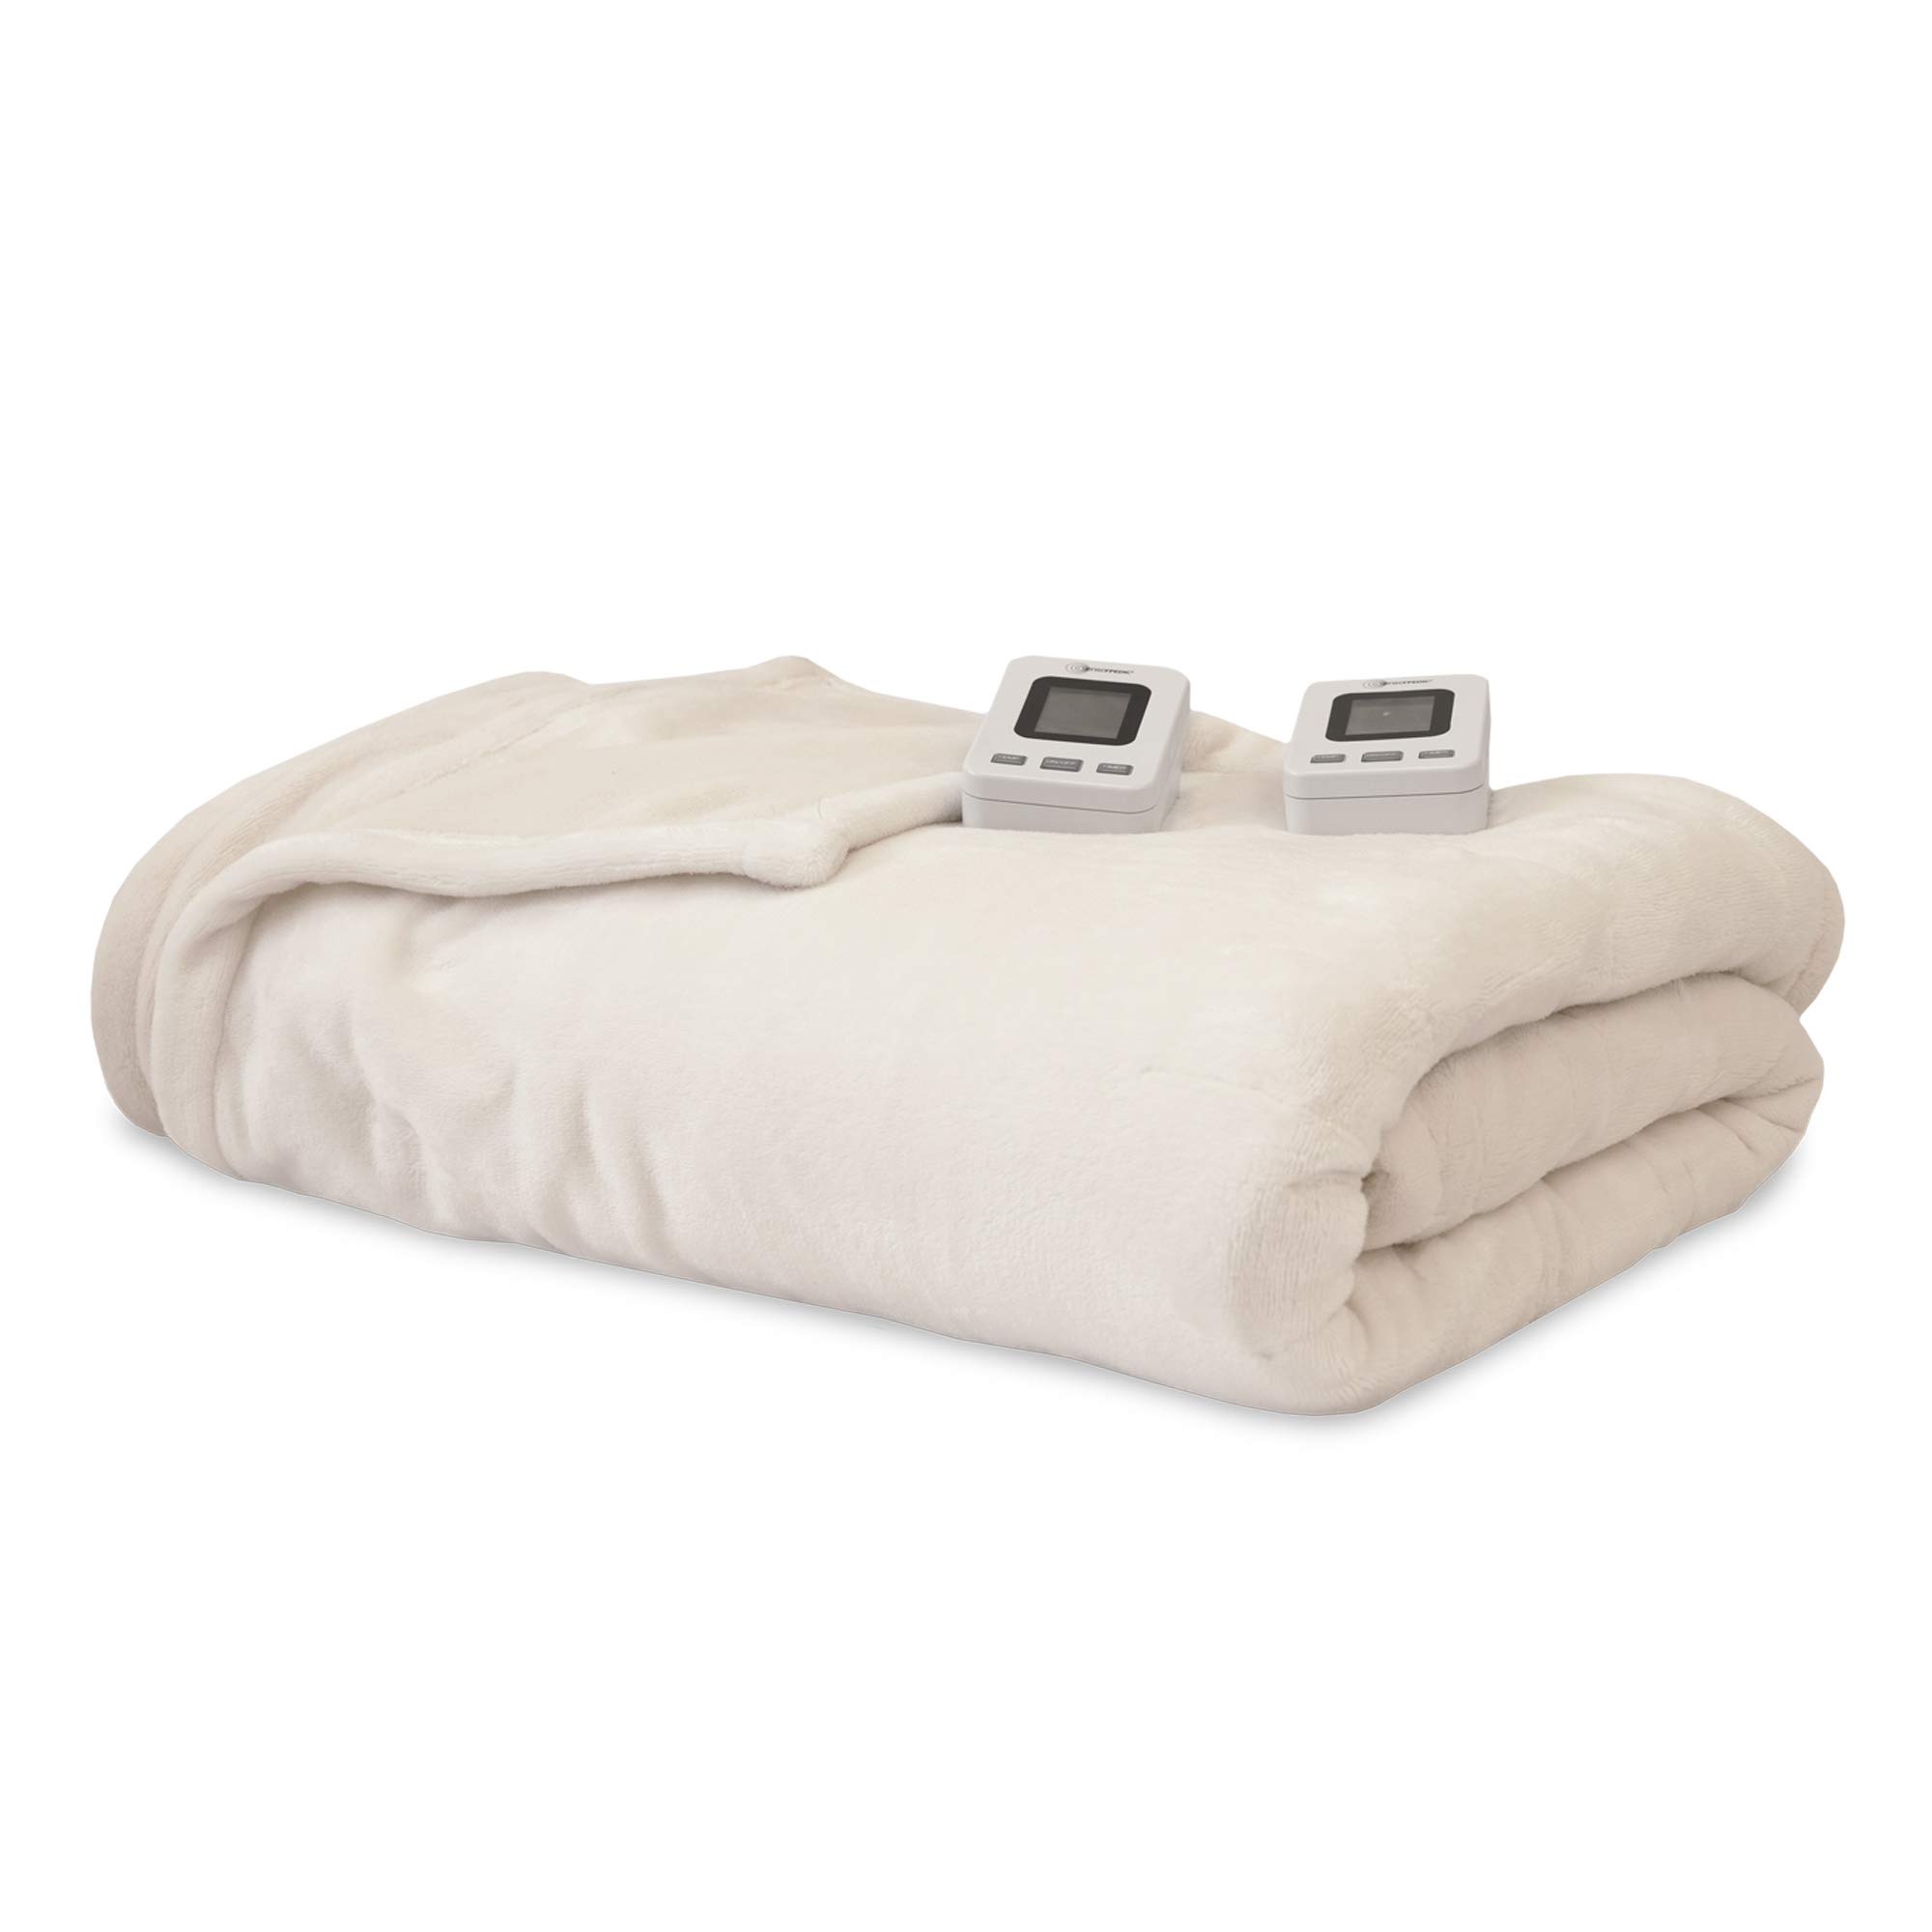 SensorPedic Heated Electric Blanket with SensorSafe, King, Ivory